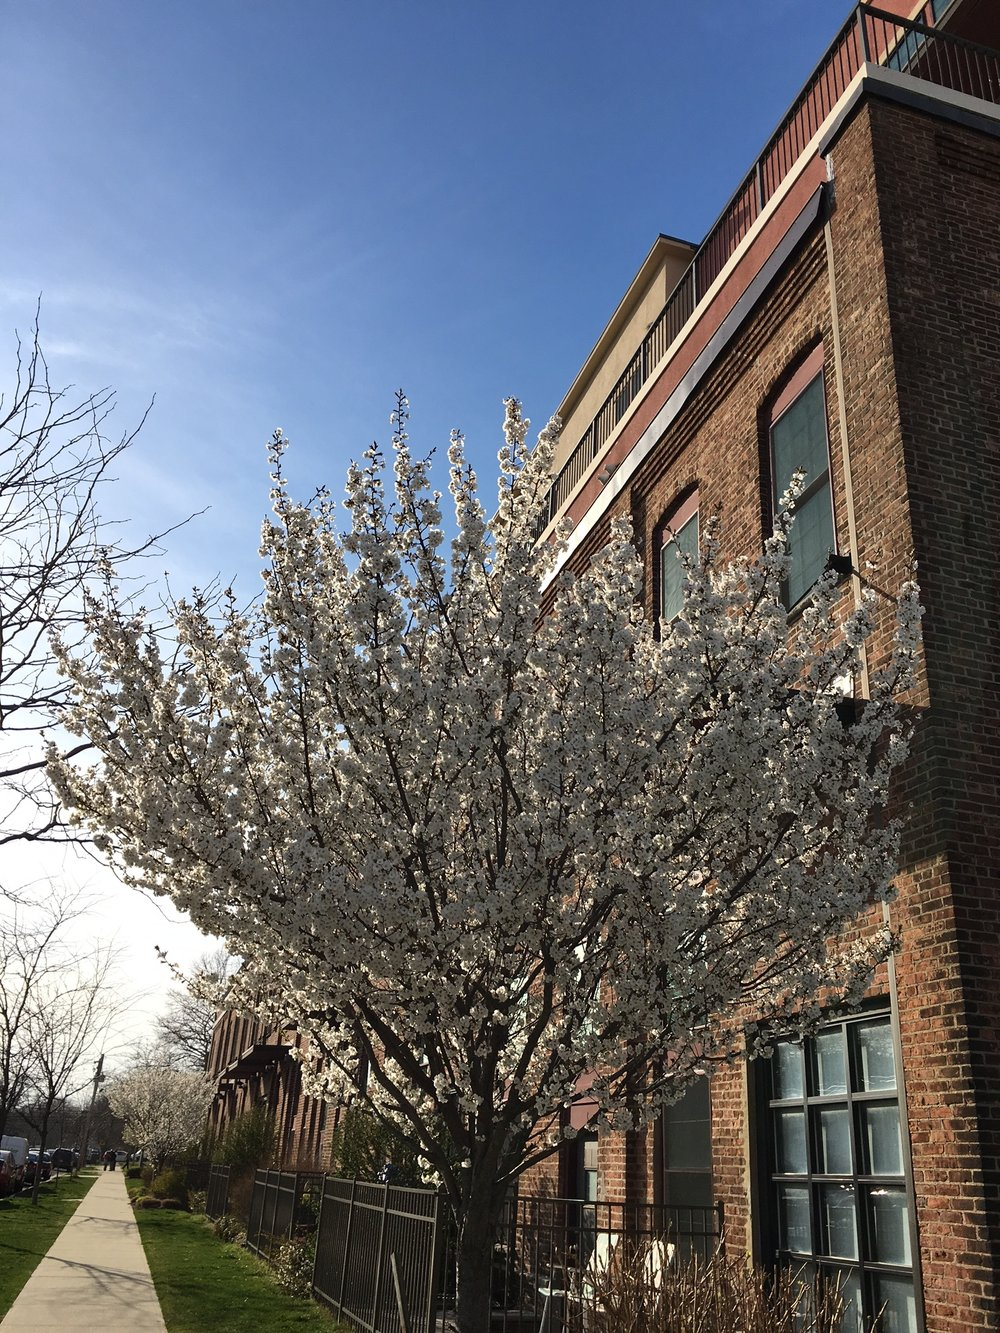 Trees are blooming all over town!